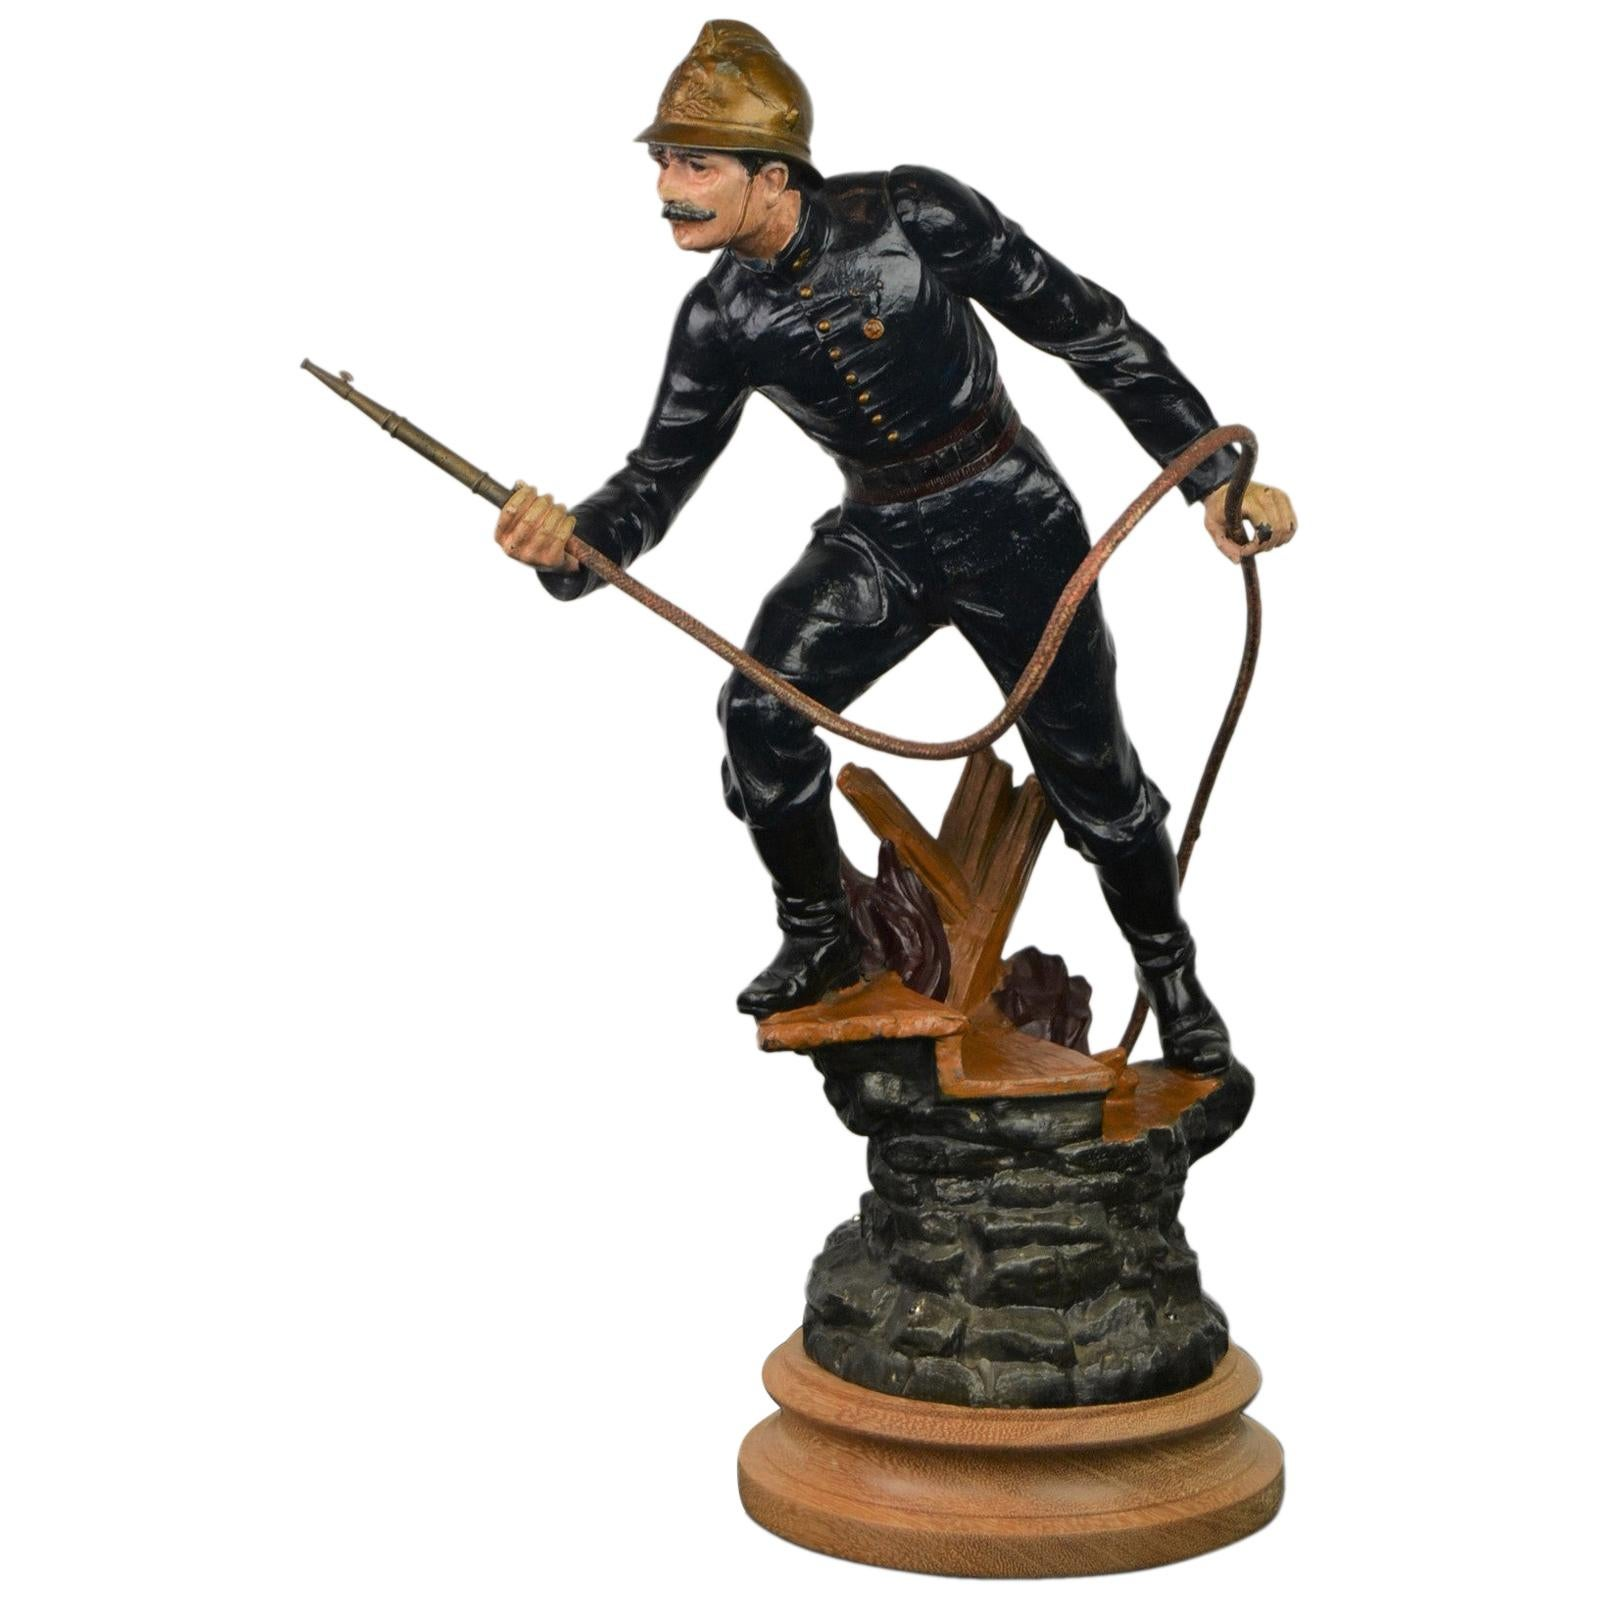 1930s French Fireman Firefighter Trophy Statue